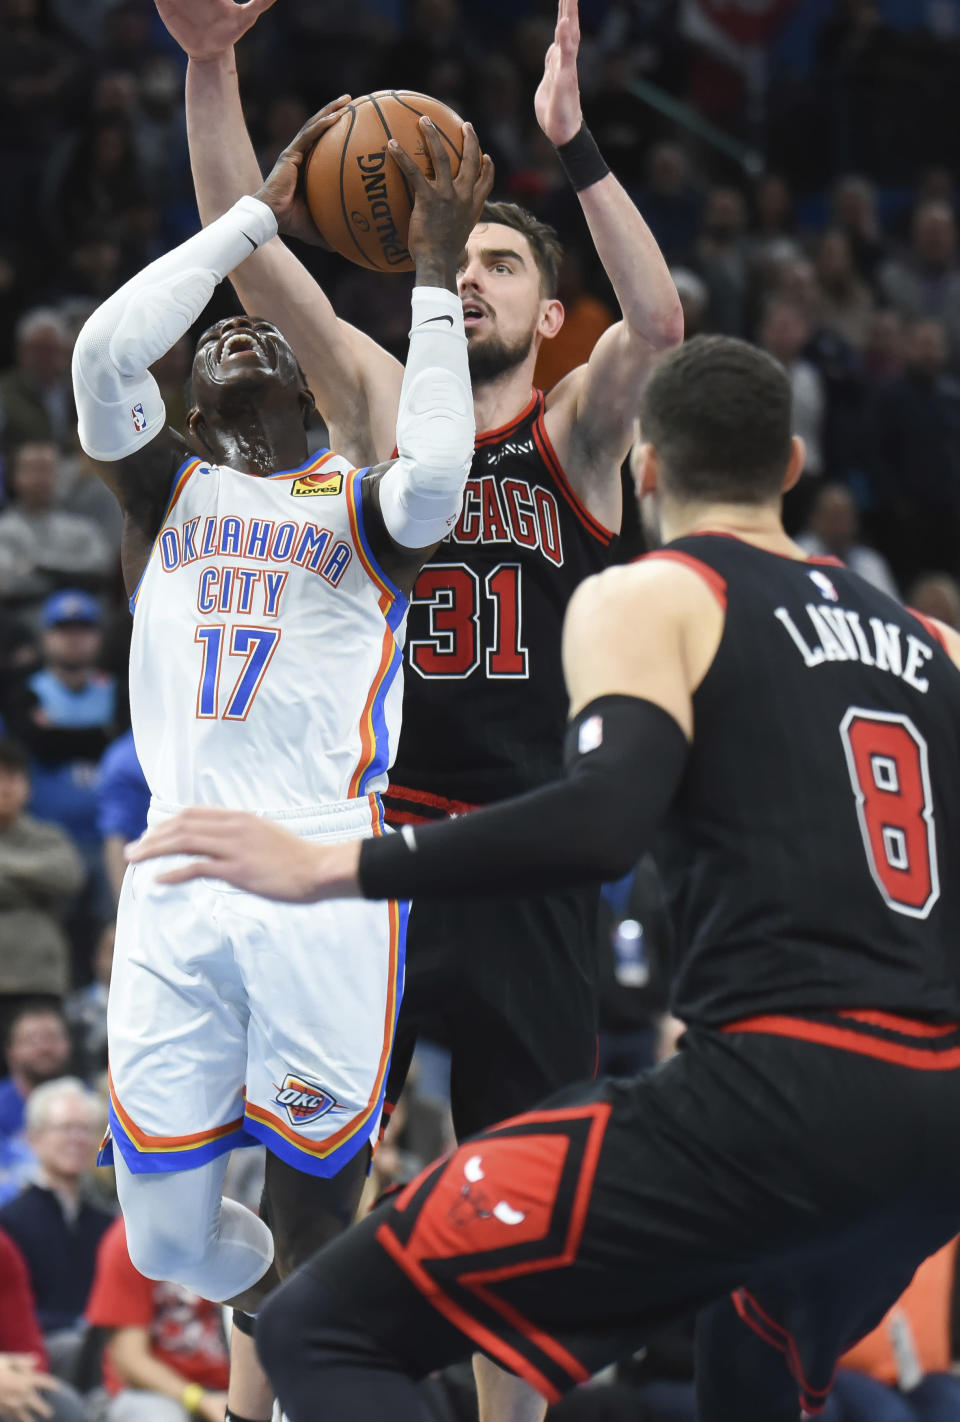 Oklahoma City Thunder guard Dennis Schroder (17)shoots the ball around Chicago Bulls guard Tomas Satoranksy (31) and Zach LaVine (8) in the second half of an NBA basketball game, Monday, Dec. 16, 2019, in Oklahoma City. (AP Photo/Kyle Phillips)